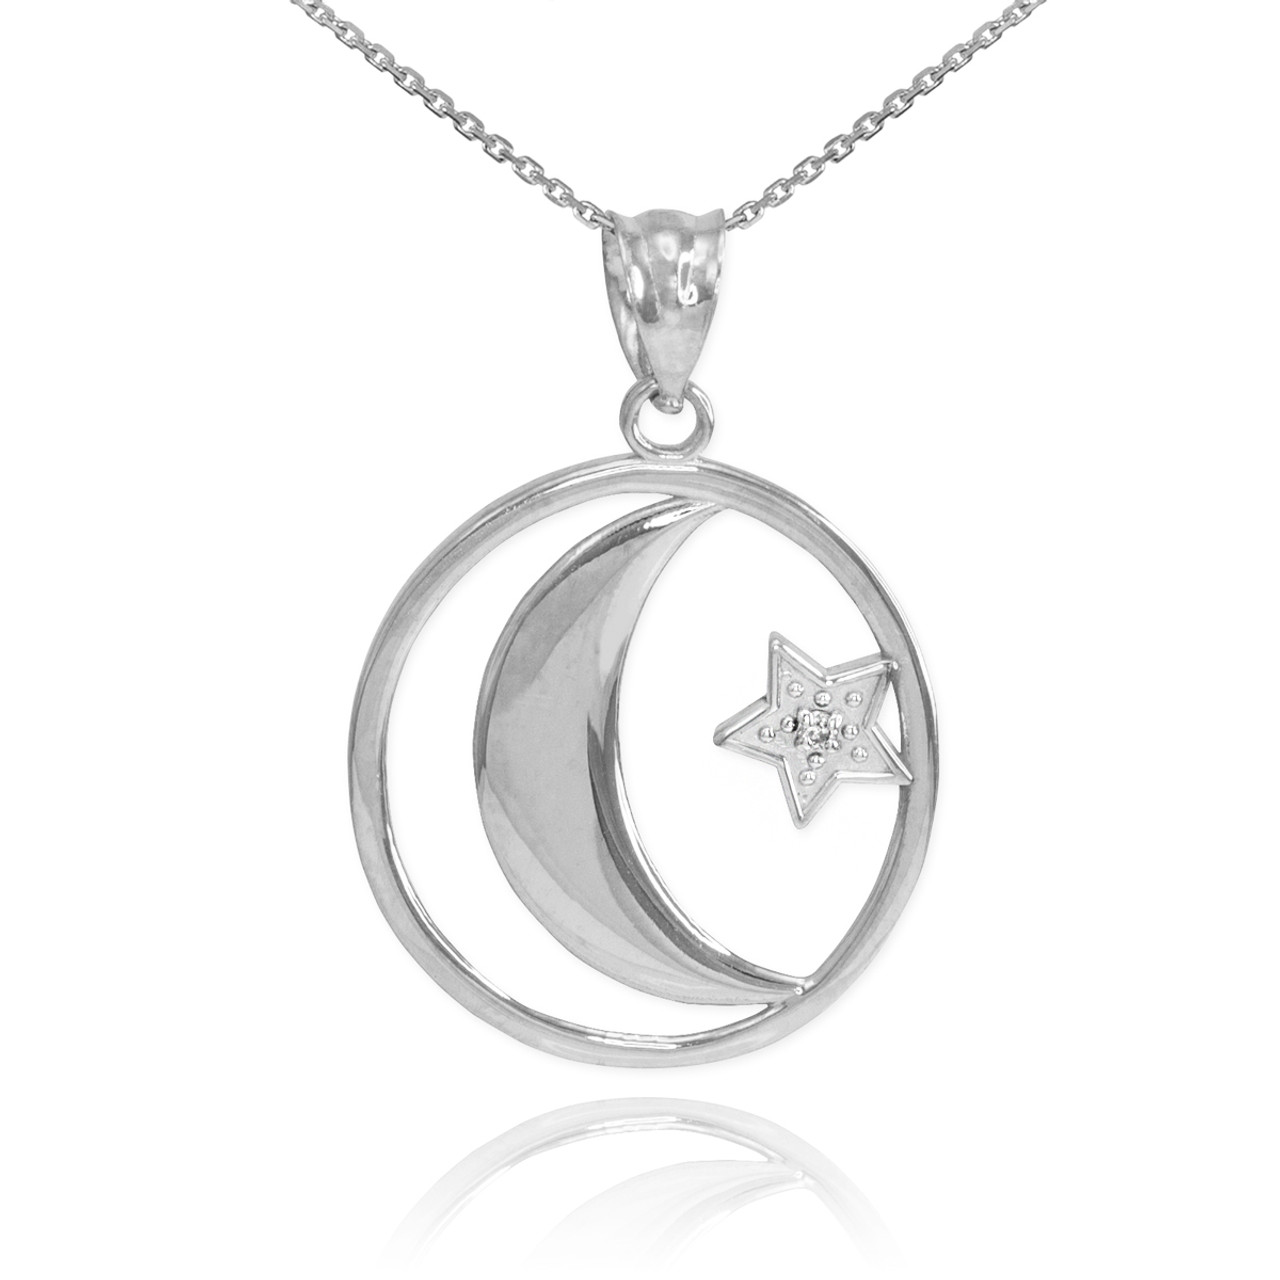 Sterling silver crescent moon with cz star islamic pendant necklace aloadofball Gallery